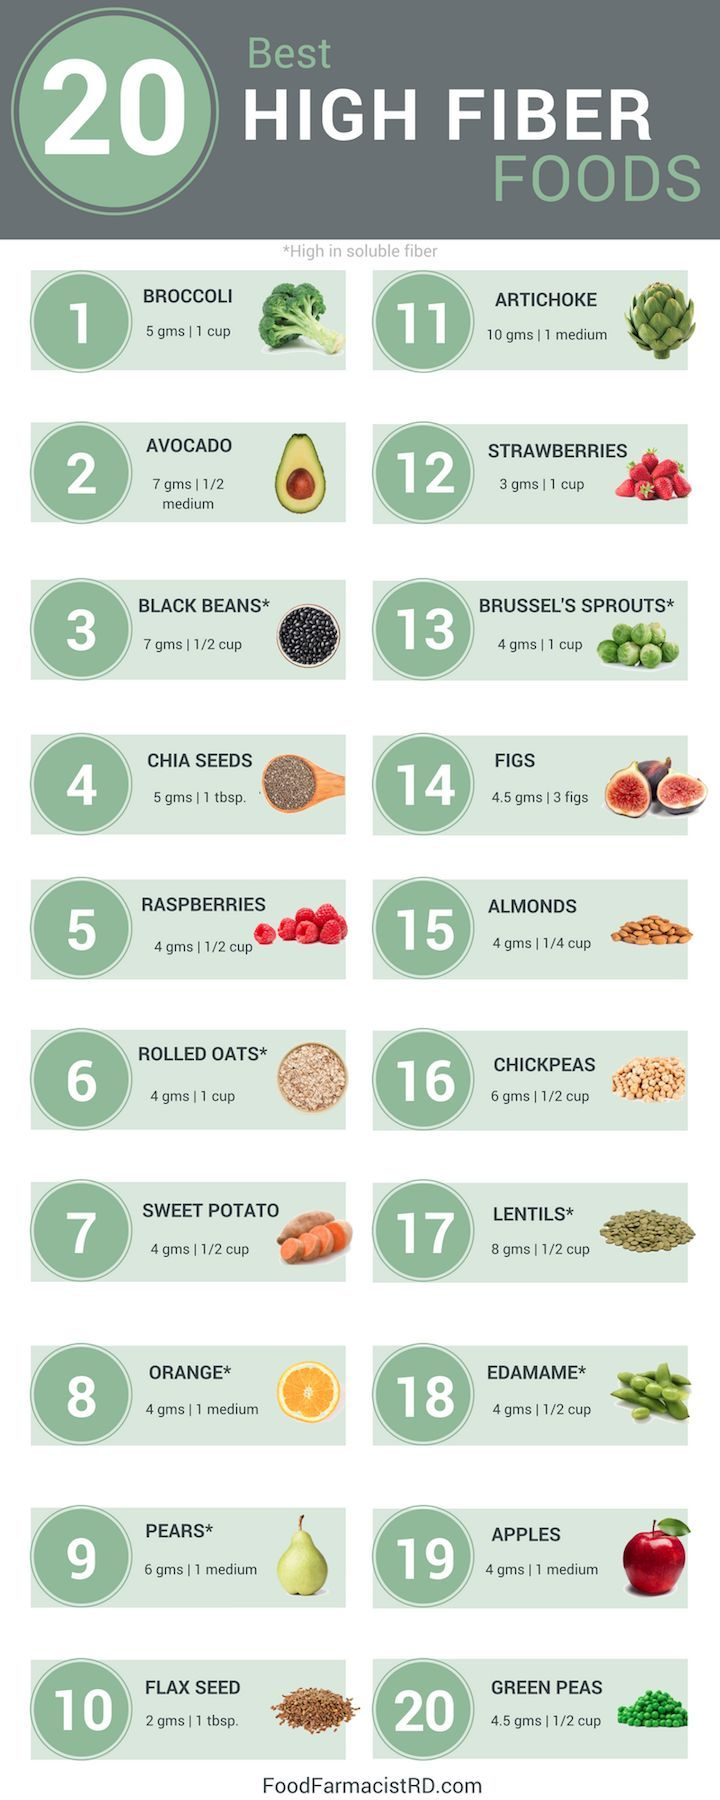 7 Ways to Lower Cholesterol Without Medication Lower